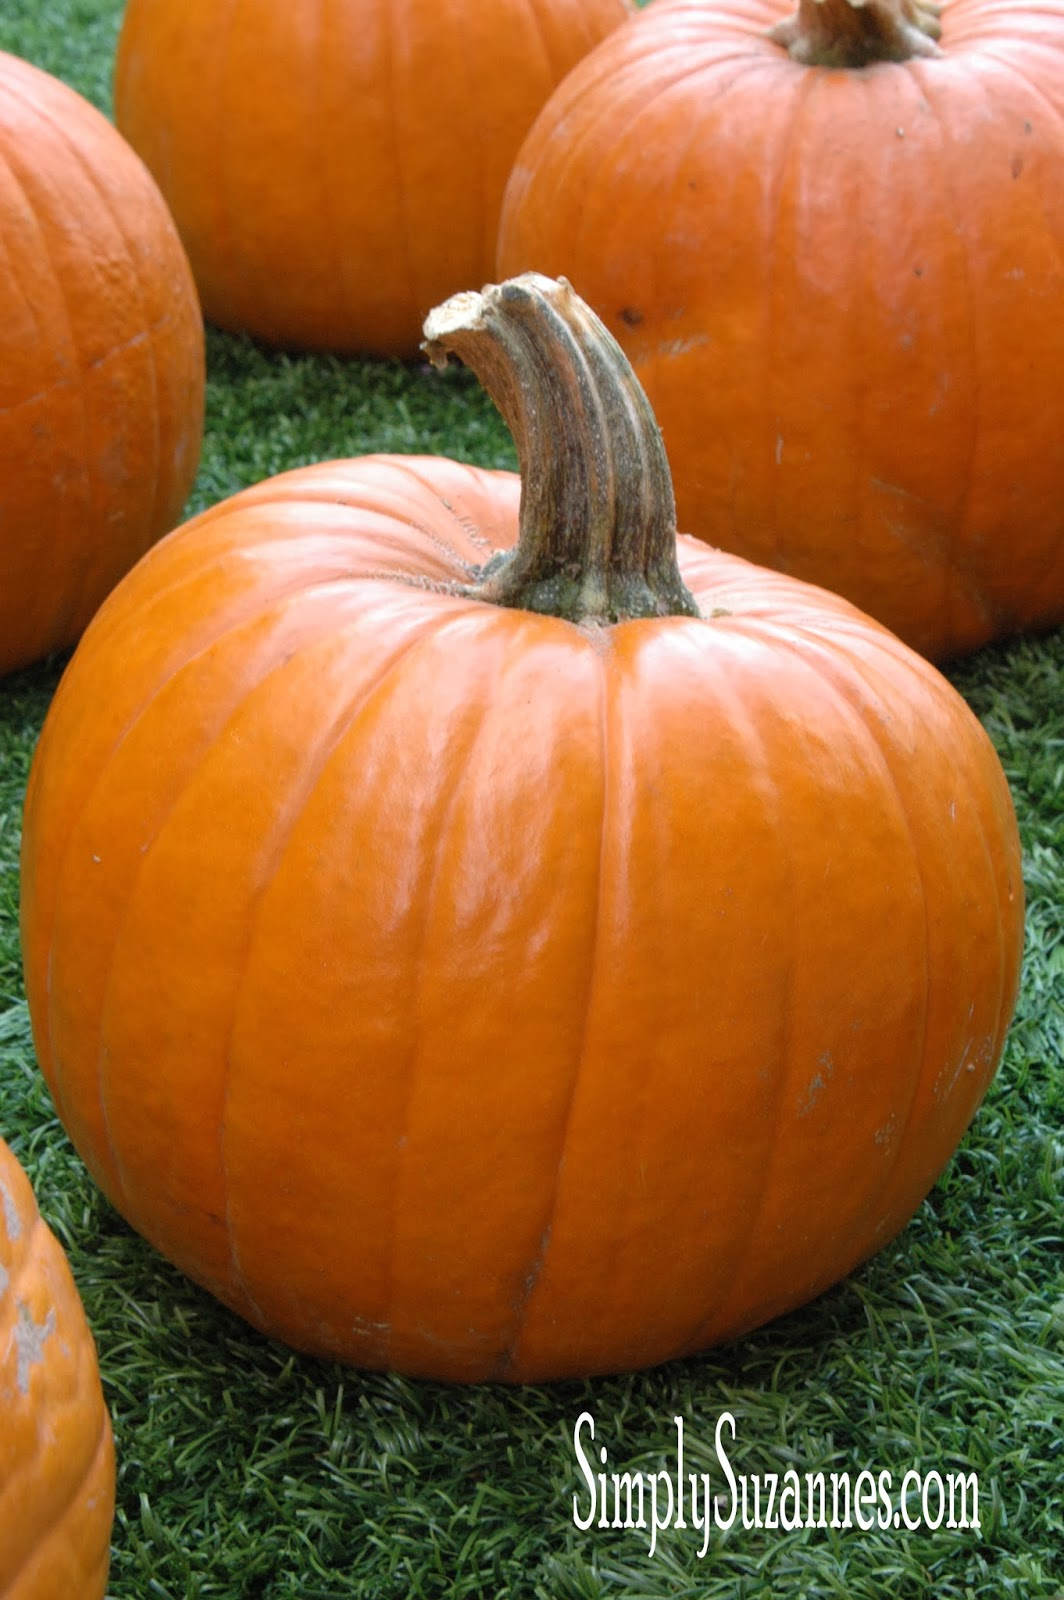 Backyard Pumpkin Patch Party :  Suzannes AT HOME fun & festive ideas for a pumpkin carving party